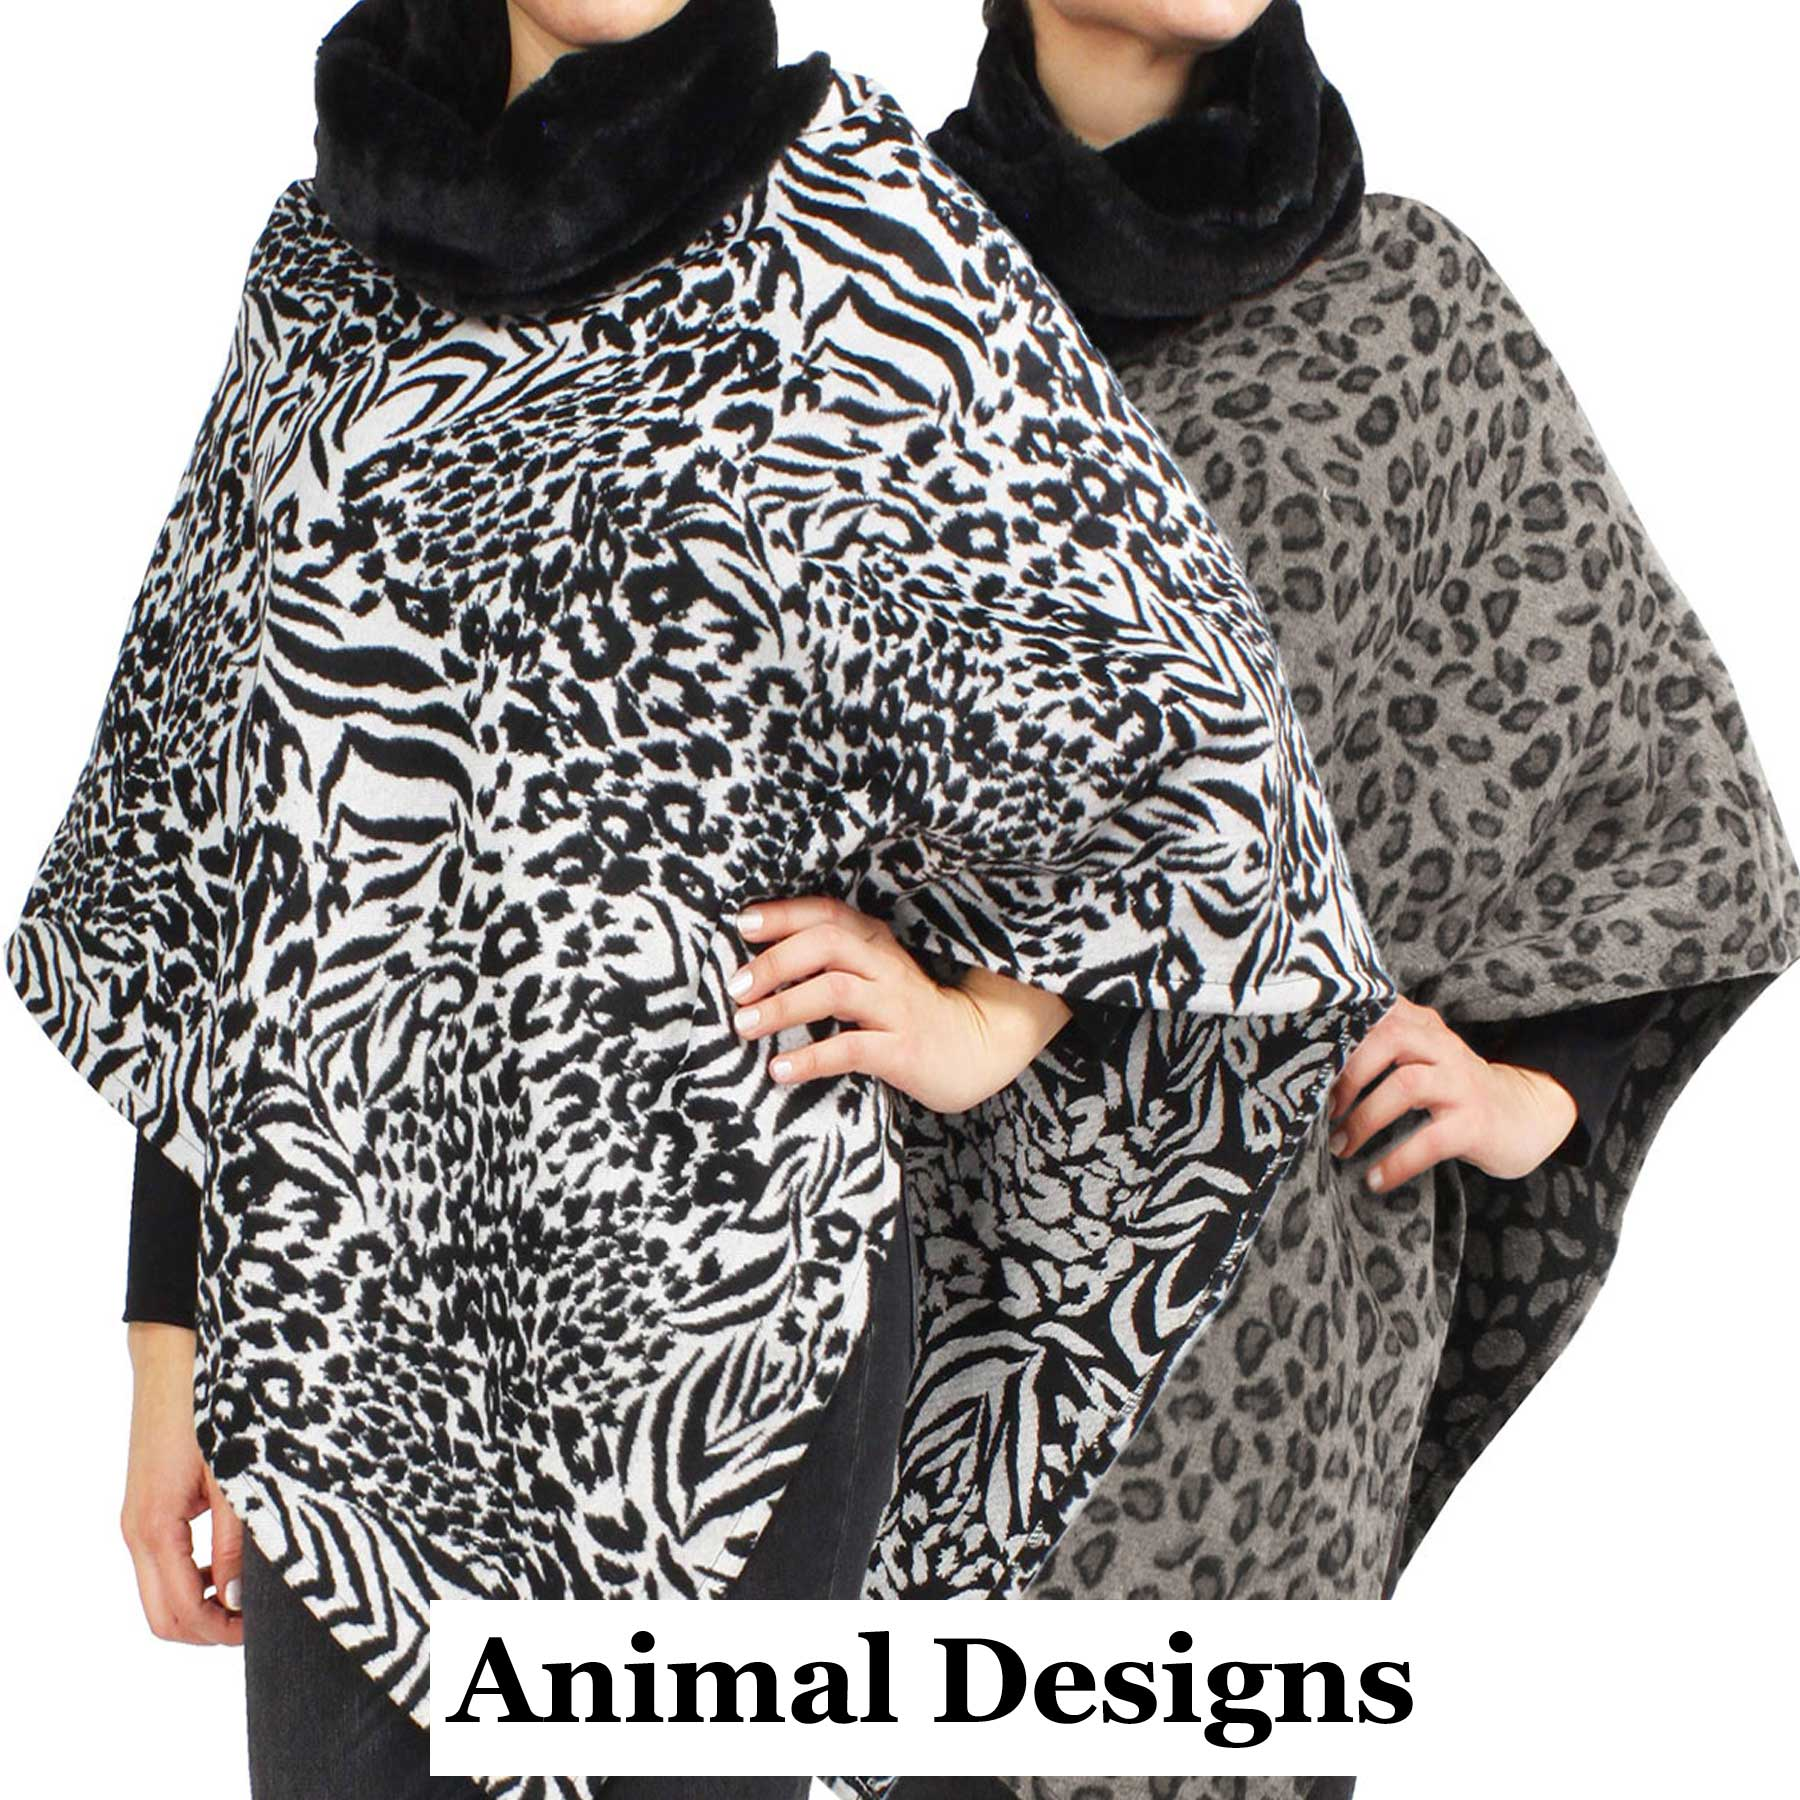 Poncho - Animal w/ Faux Fur Collar 9395 & 9396